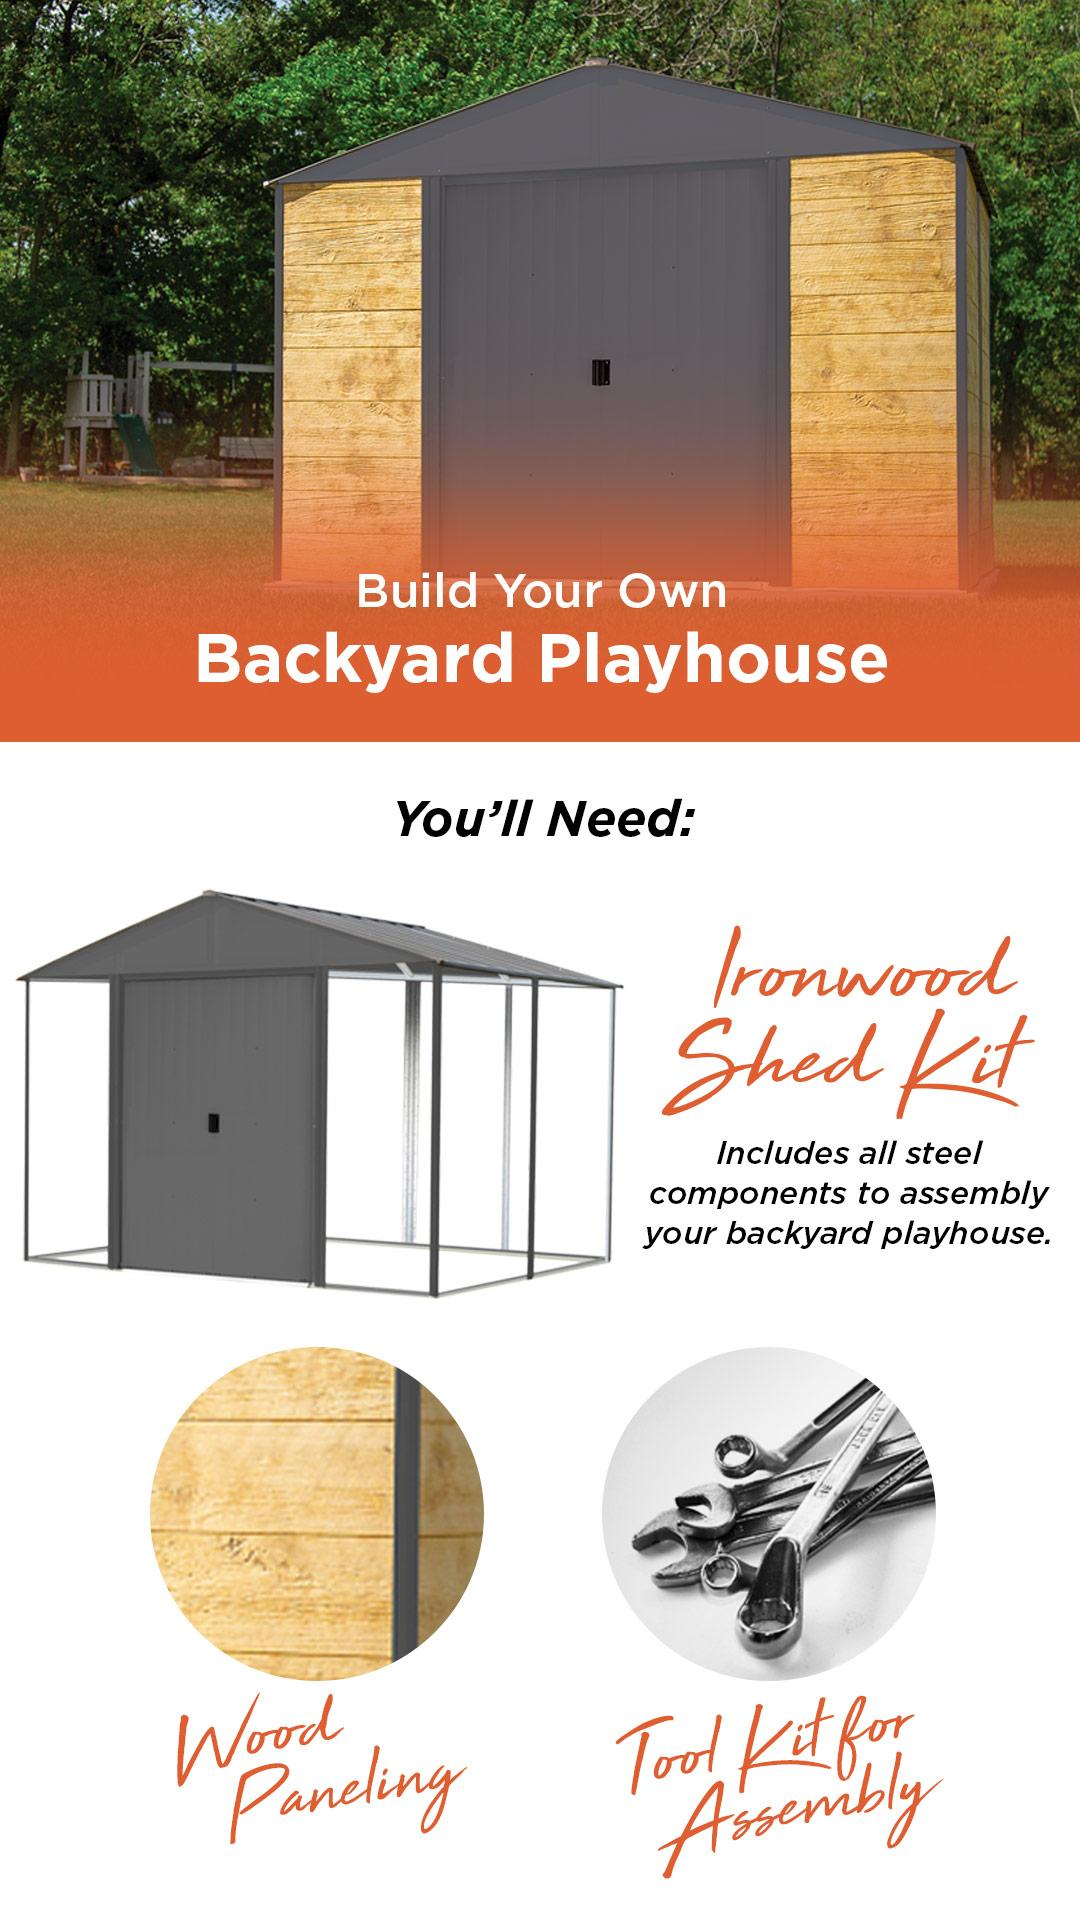 Build Your Own Backyard Playhouse